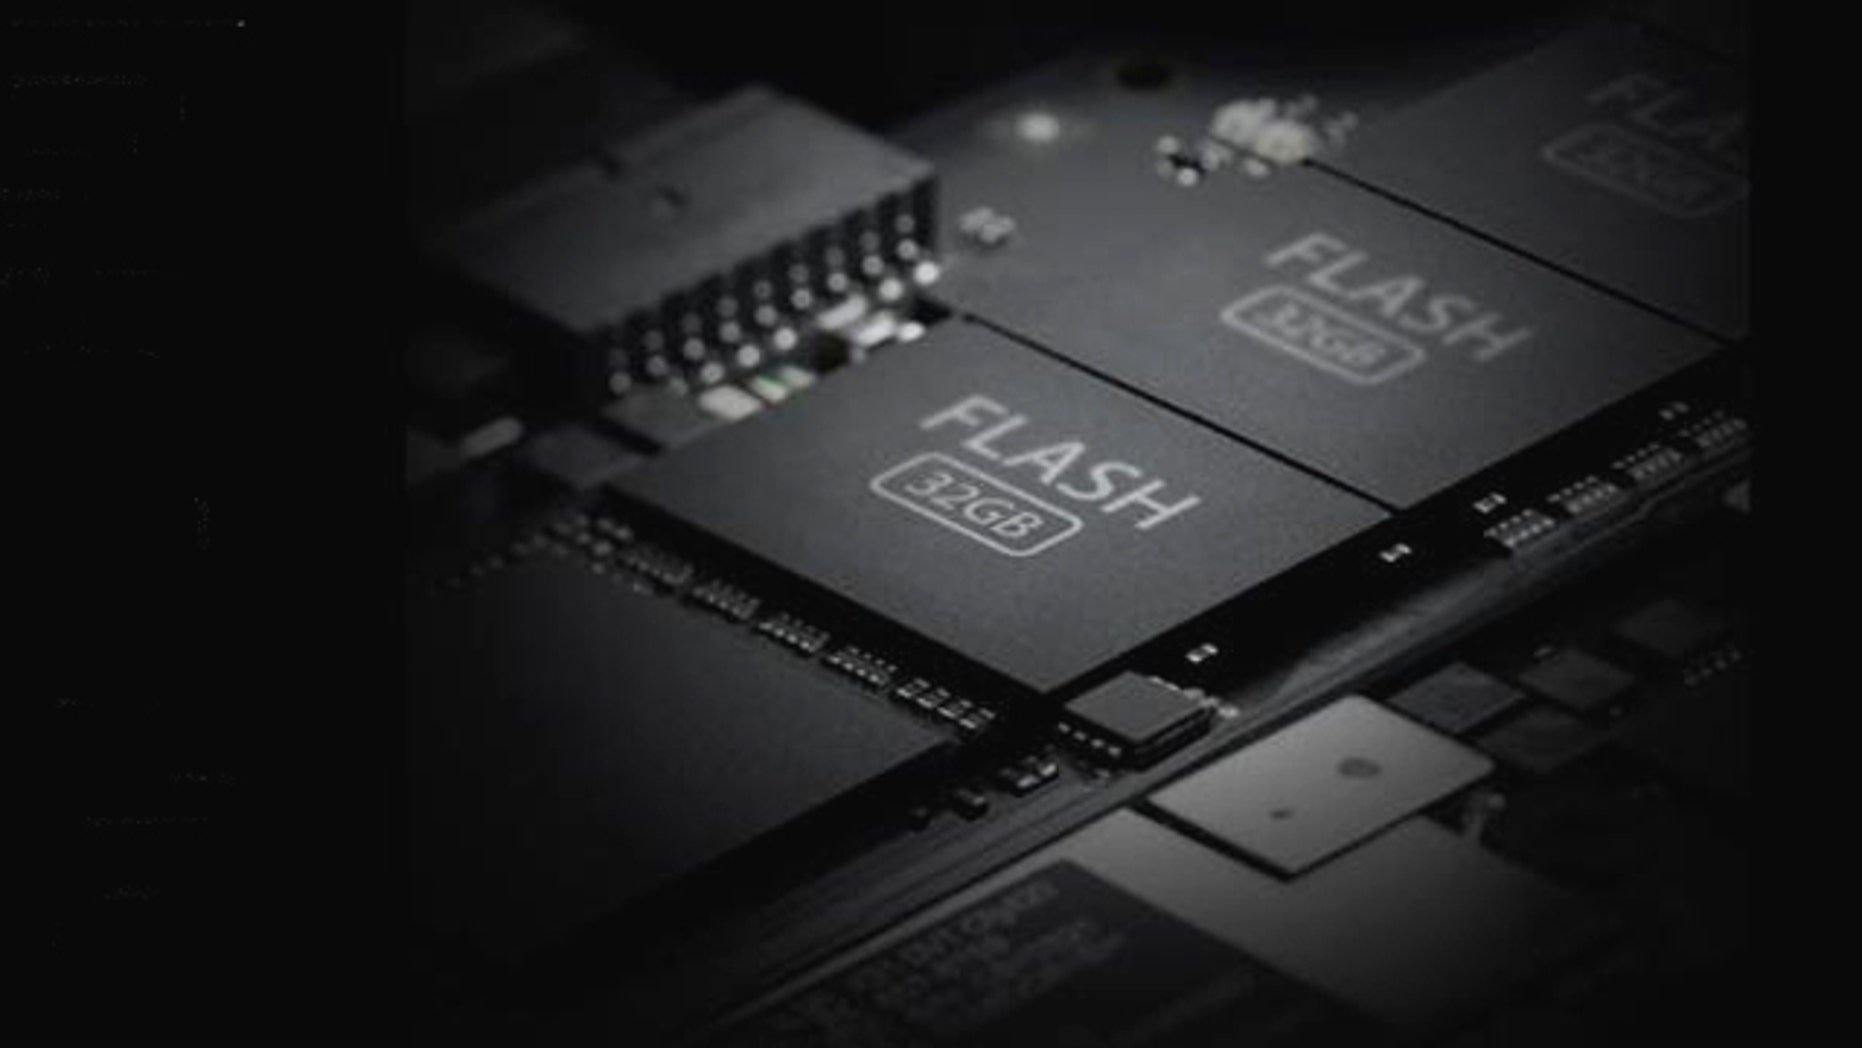 A screen capture of Apple's website highlights the flash memory within the new MacBook Air, chips that allow the laptop to boot in mere seconds.